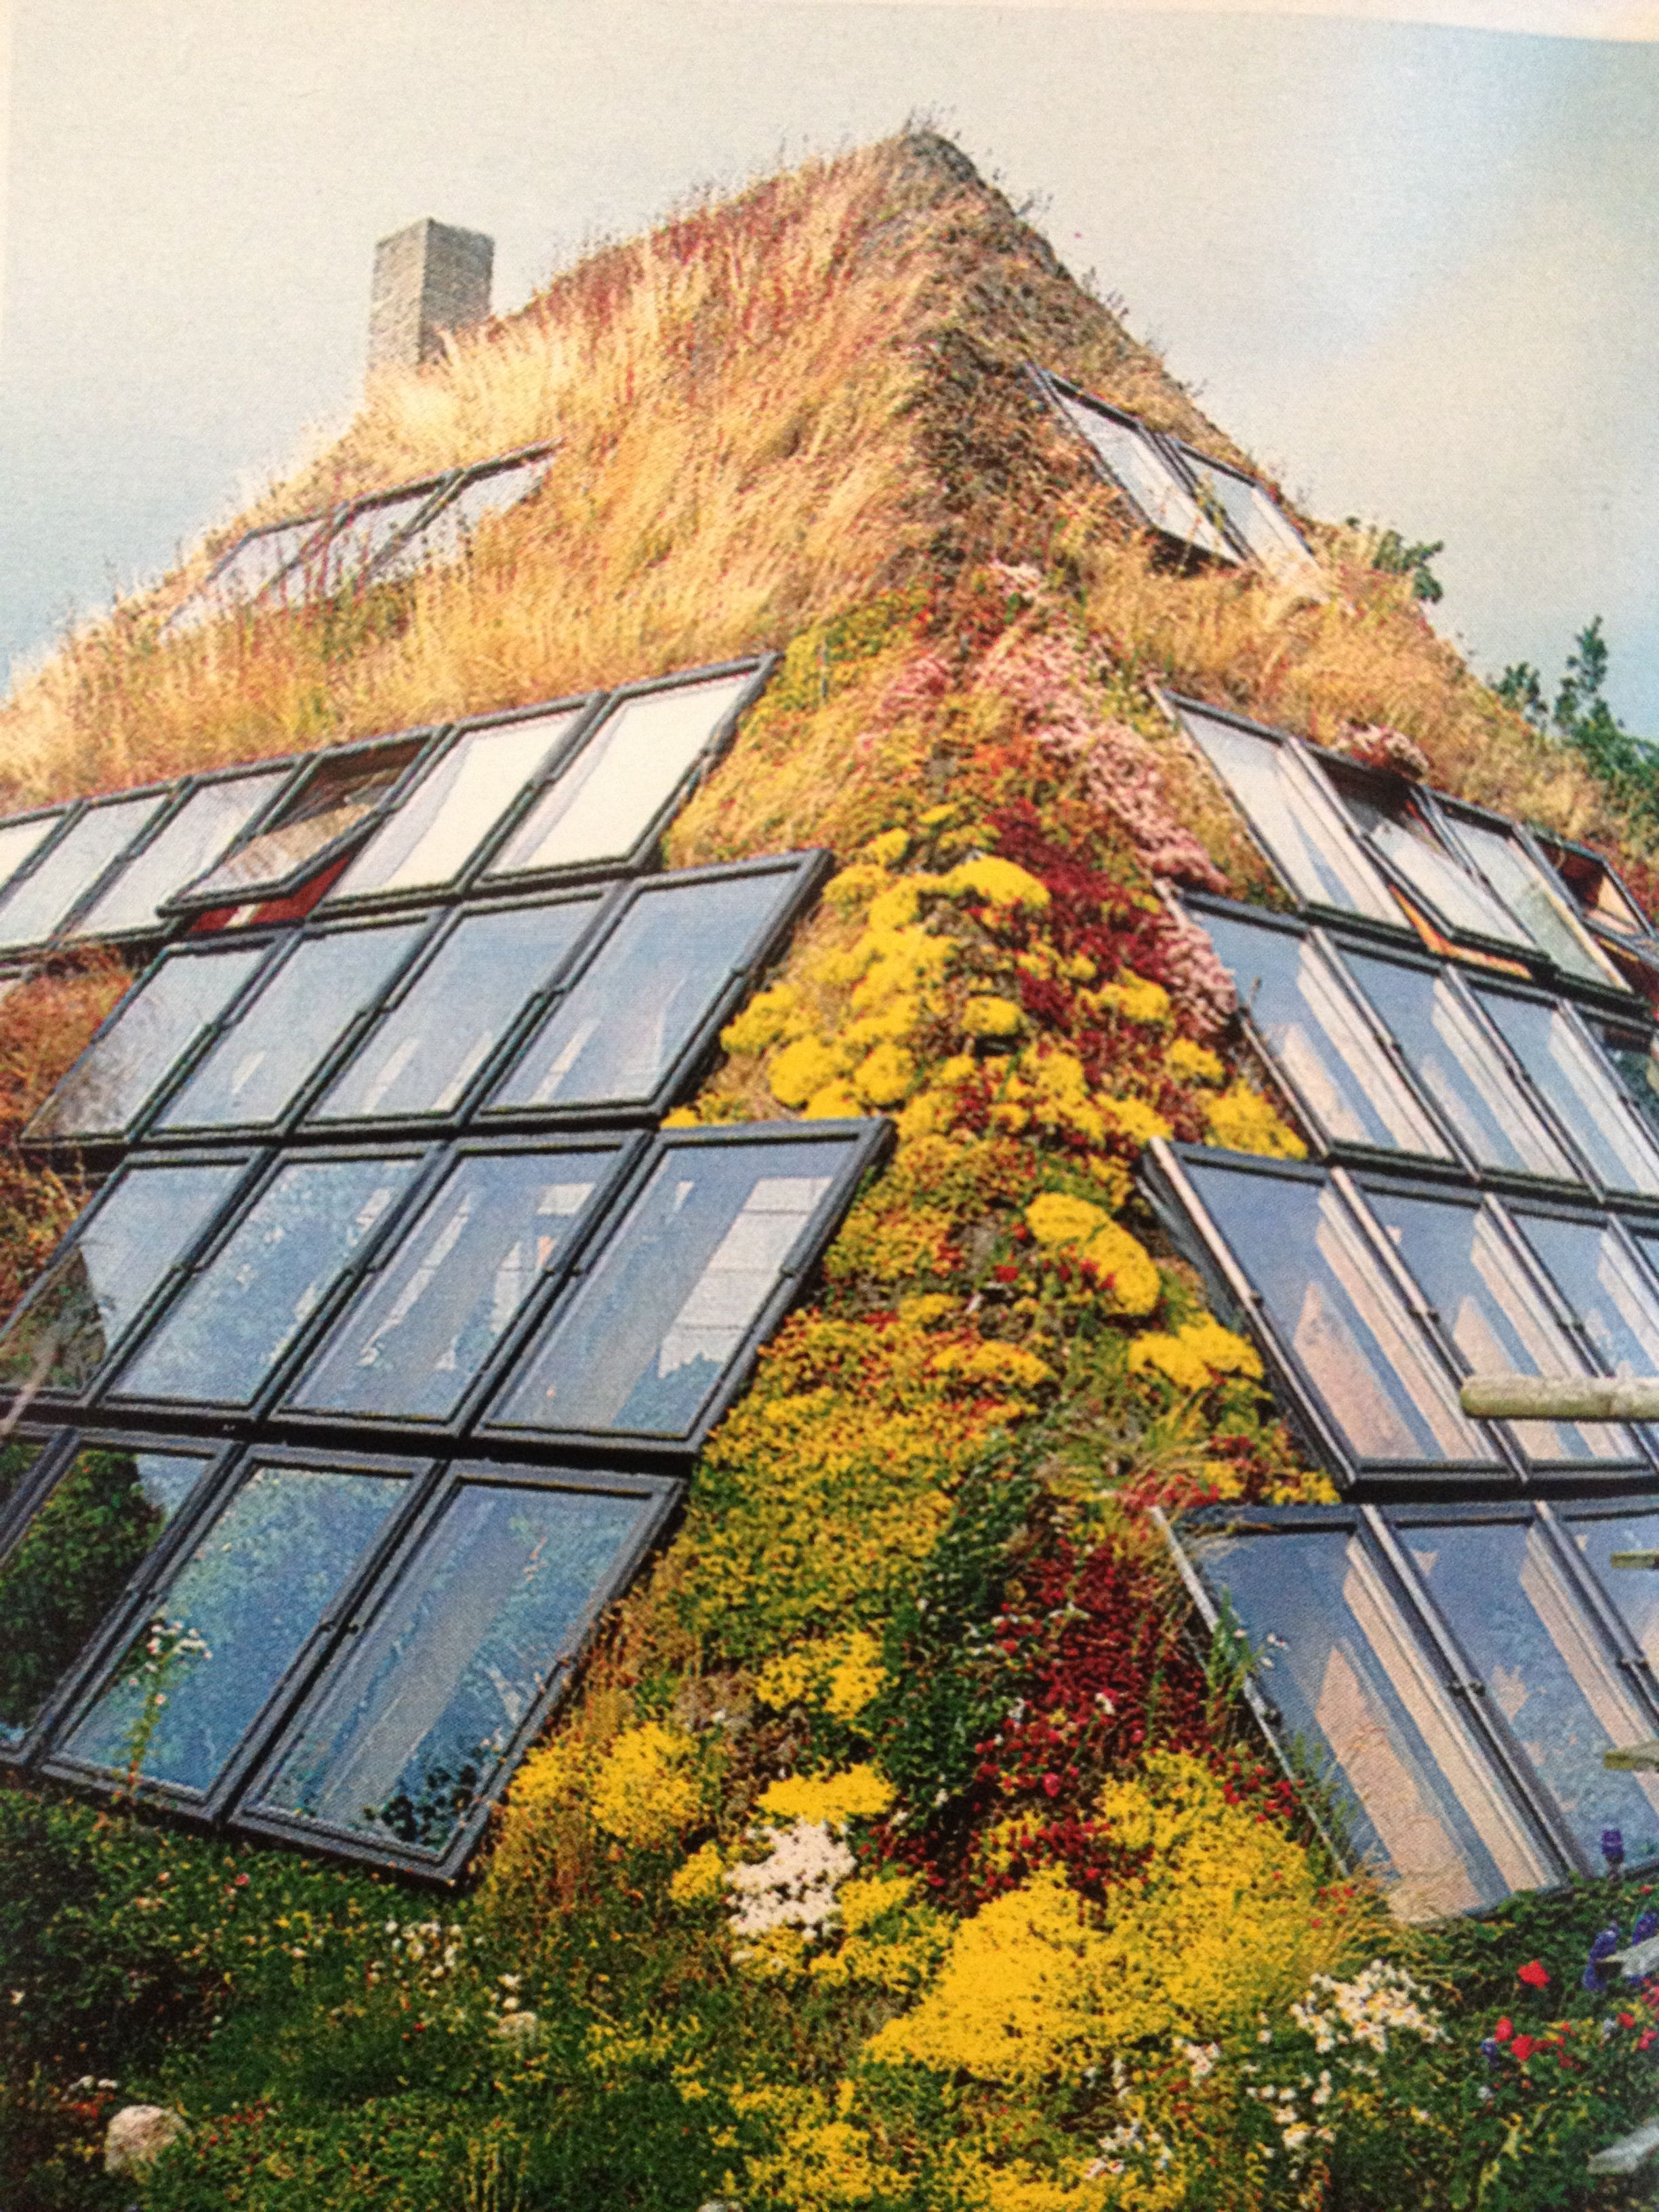 Amazing pyramid-style earth sheltered home